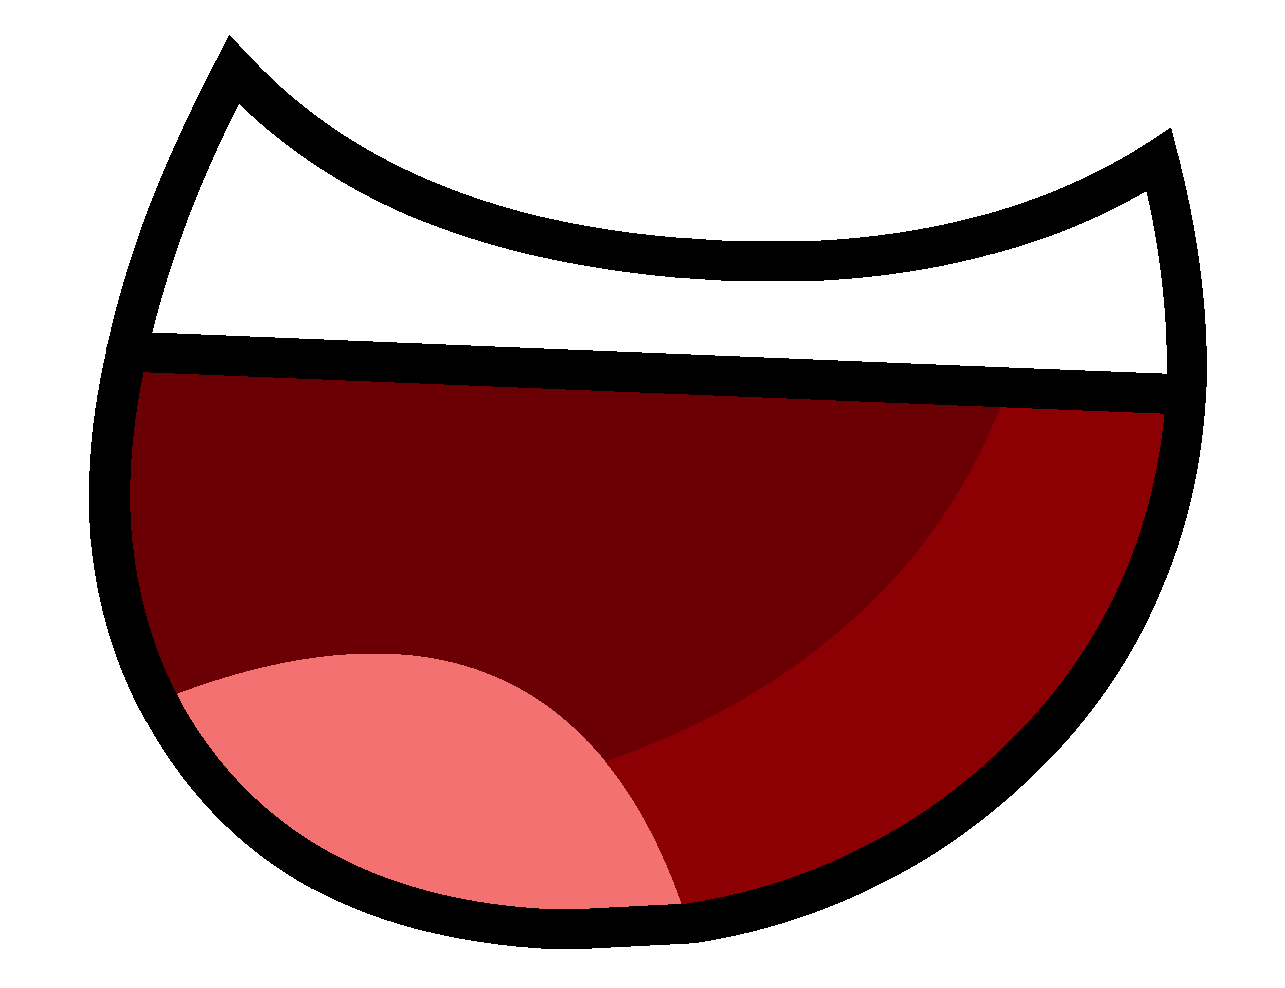 Cartoon Mouth Transparent PNG